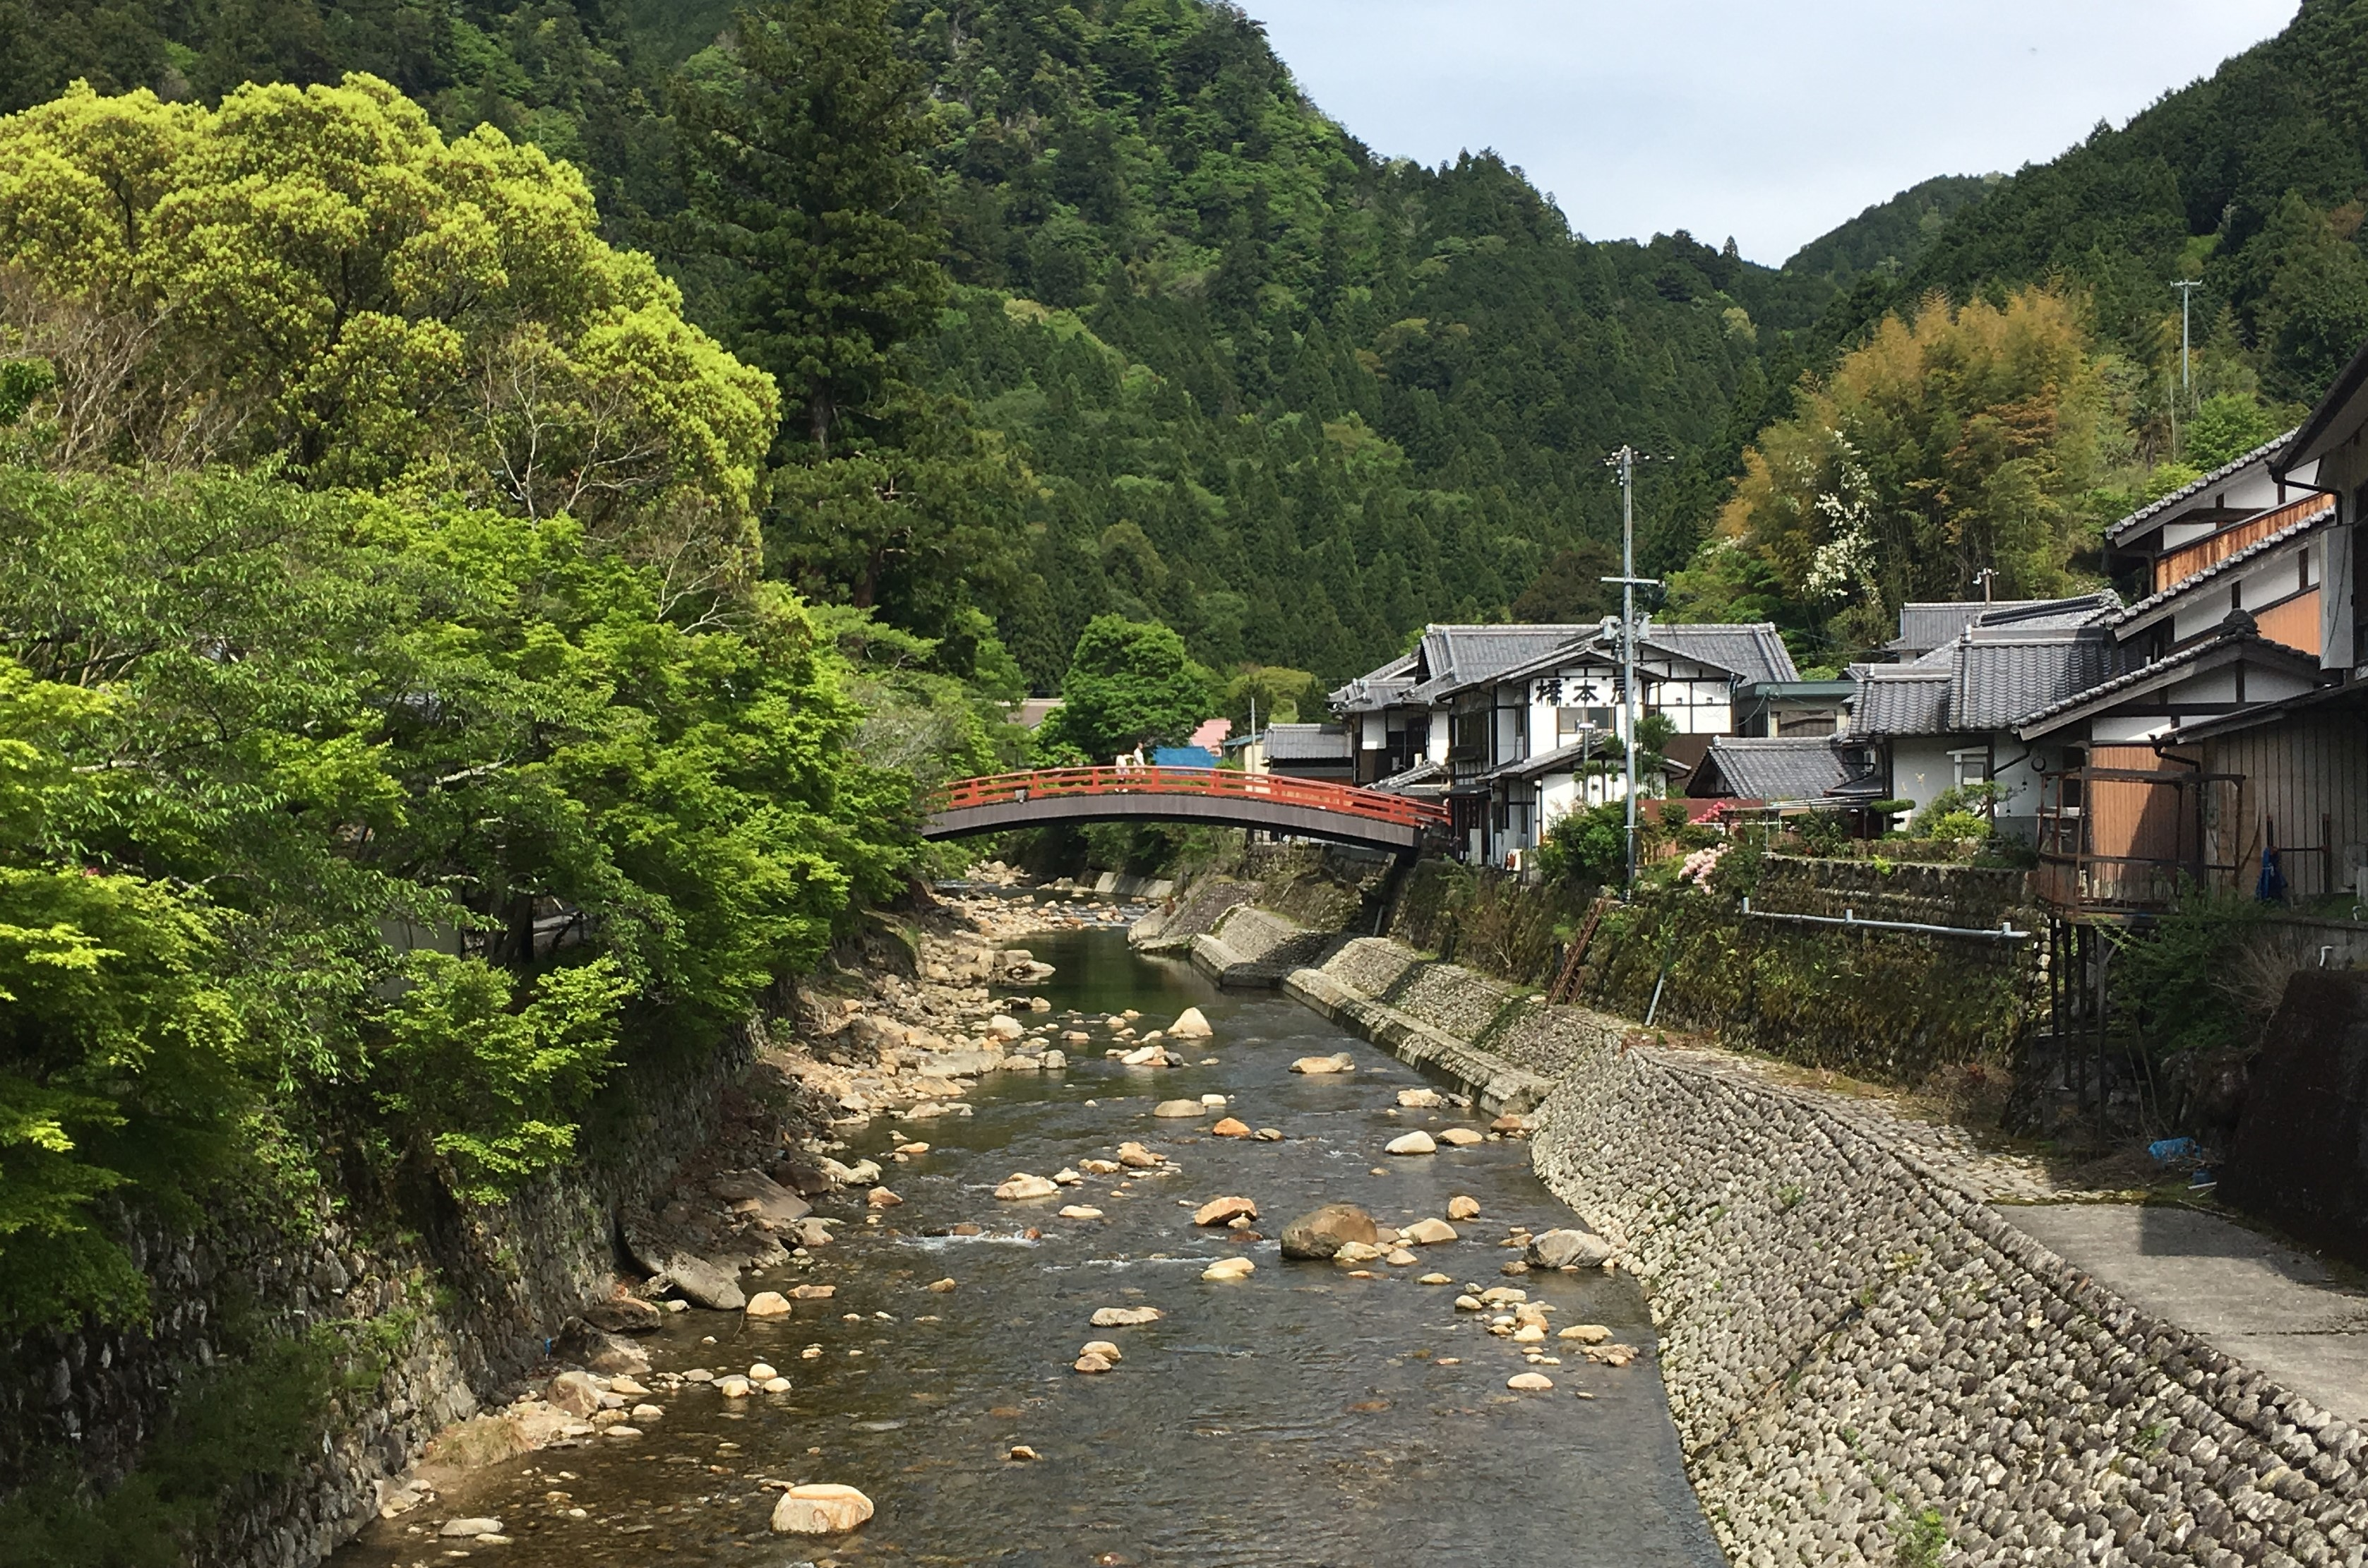 bright red taiki bashi over a rocky river leading to muro-ji temple